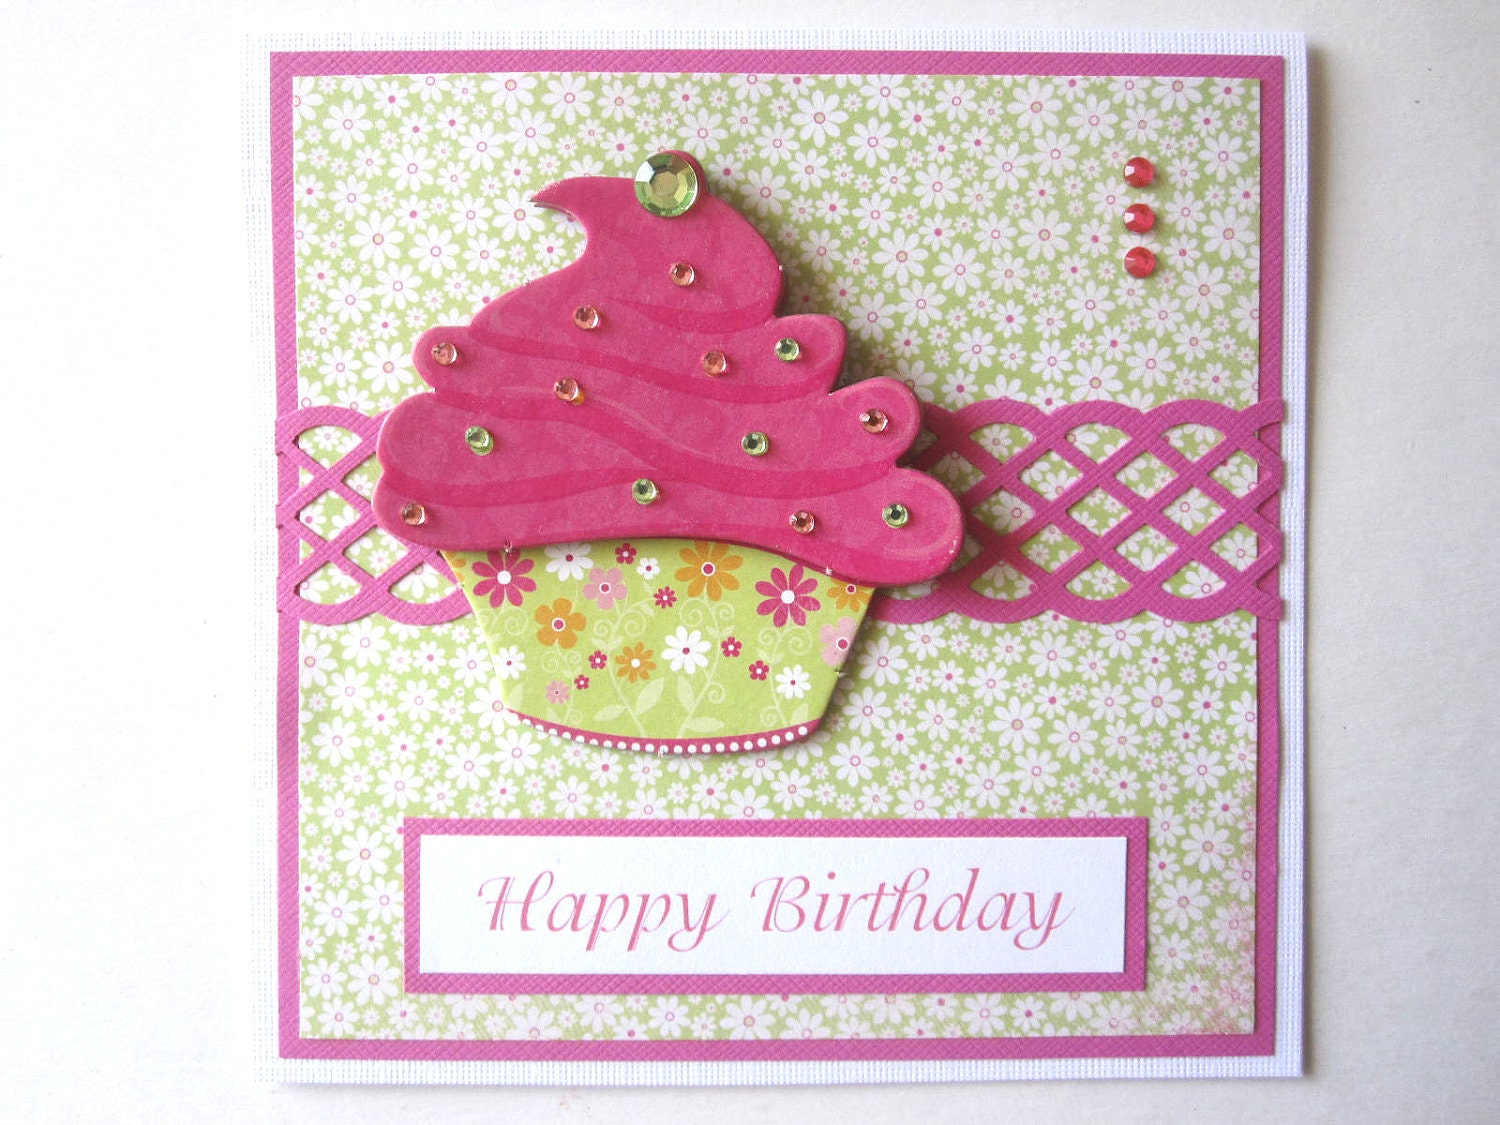 handmade cupcake birthday card can be personalized, Birthday card